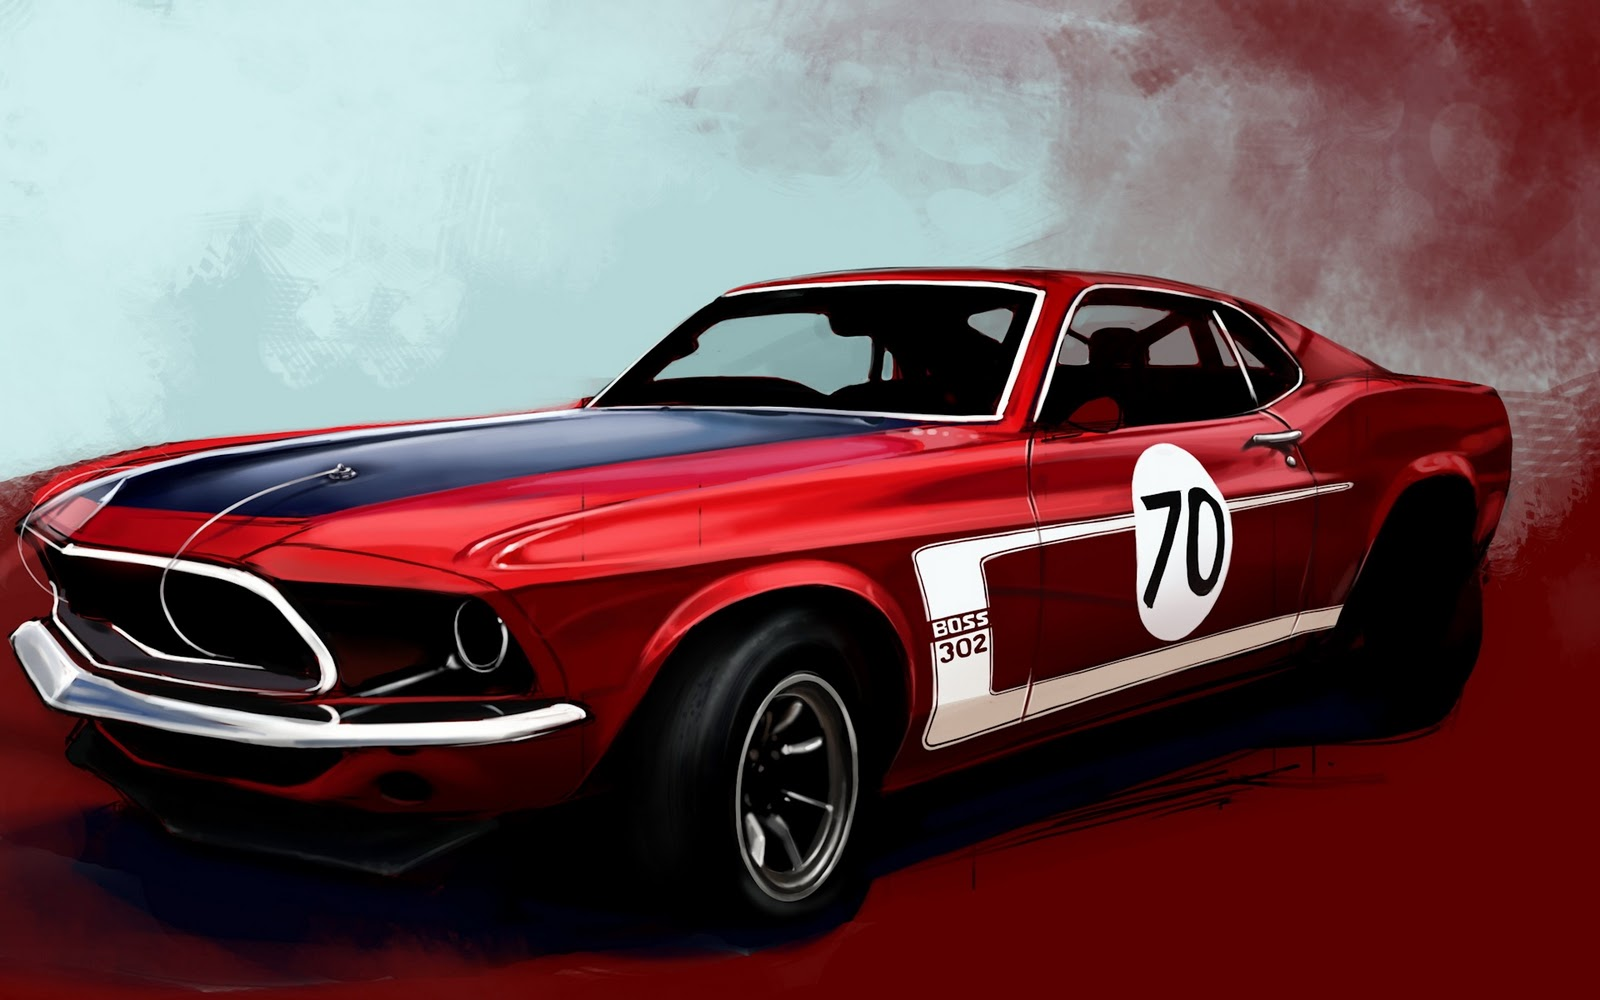 cool cars wallpaper cool muscle car wallpaper